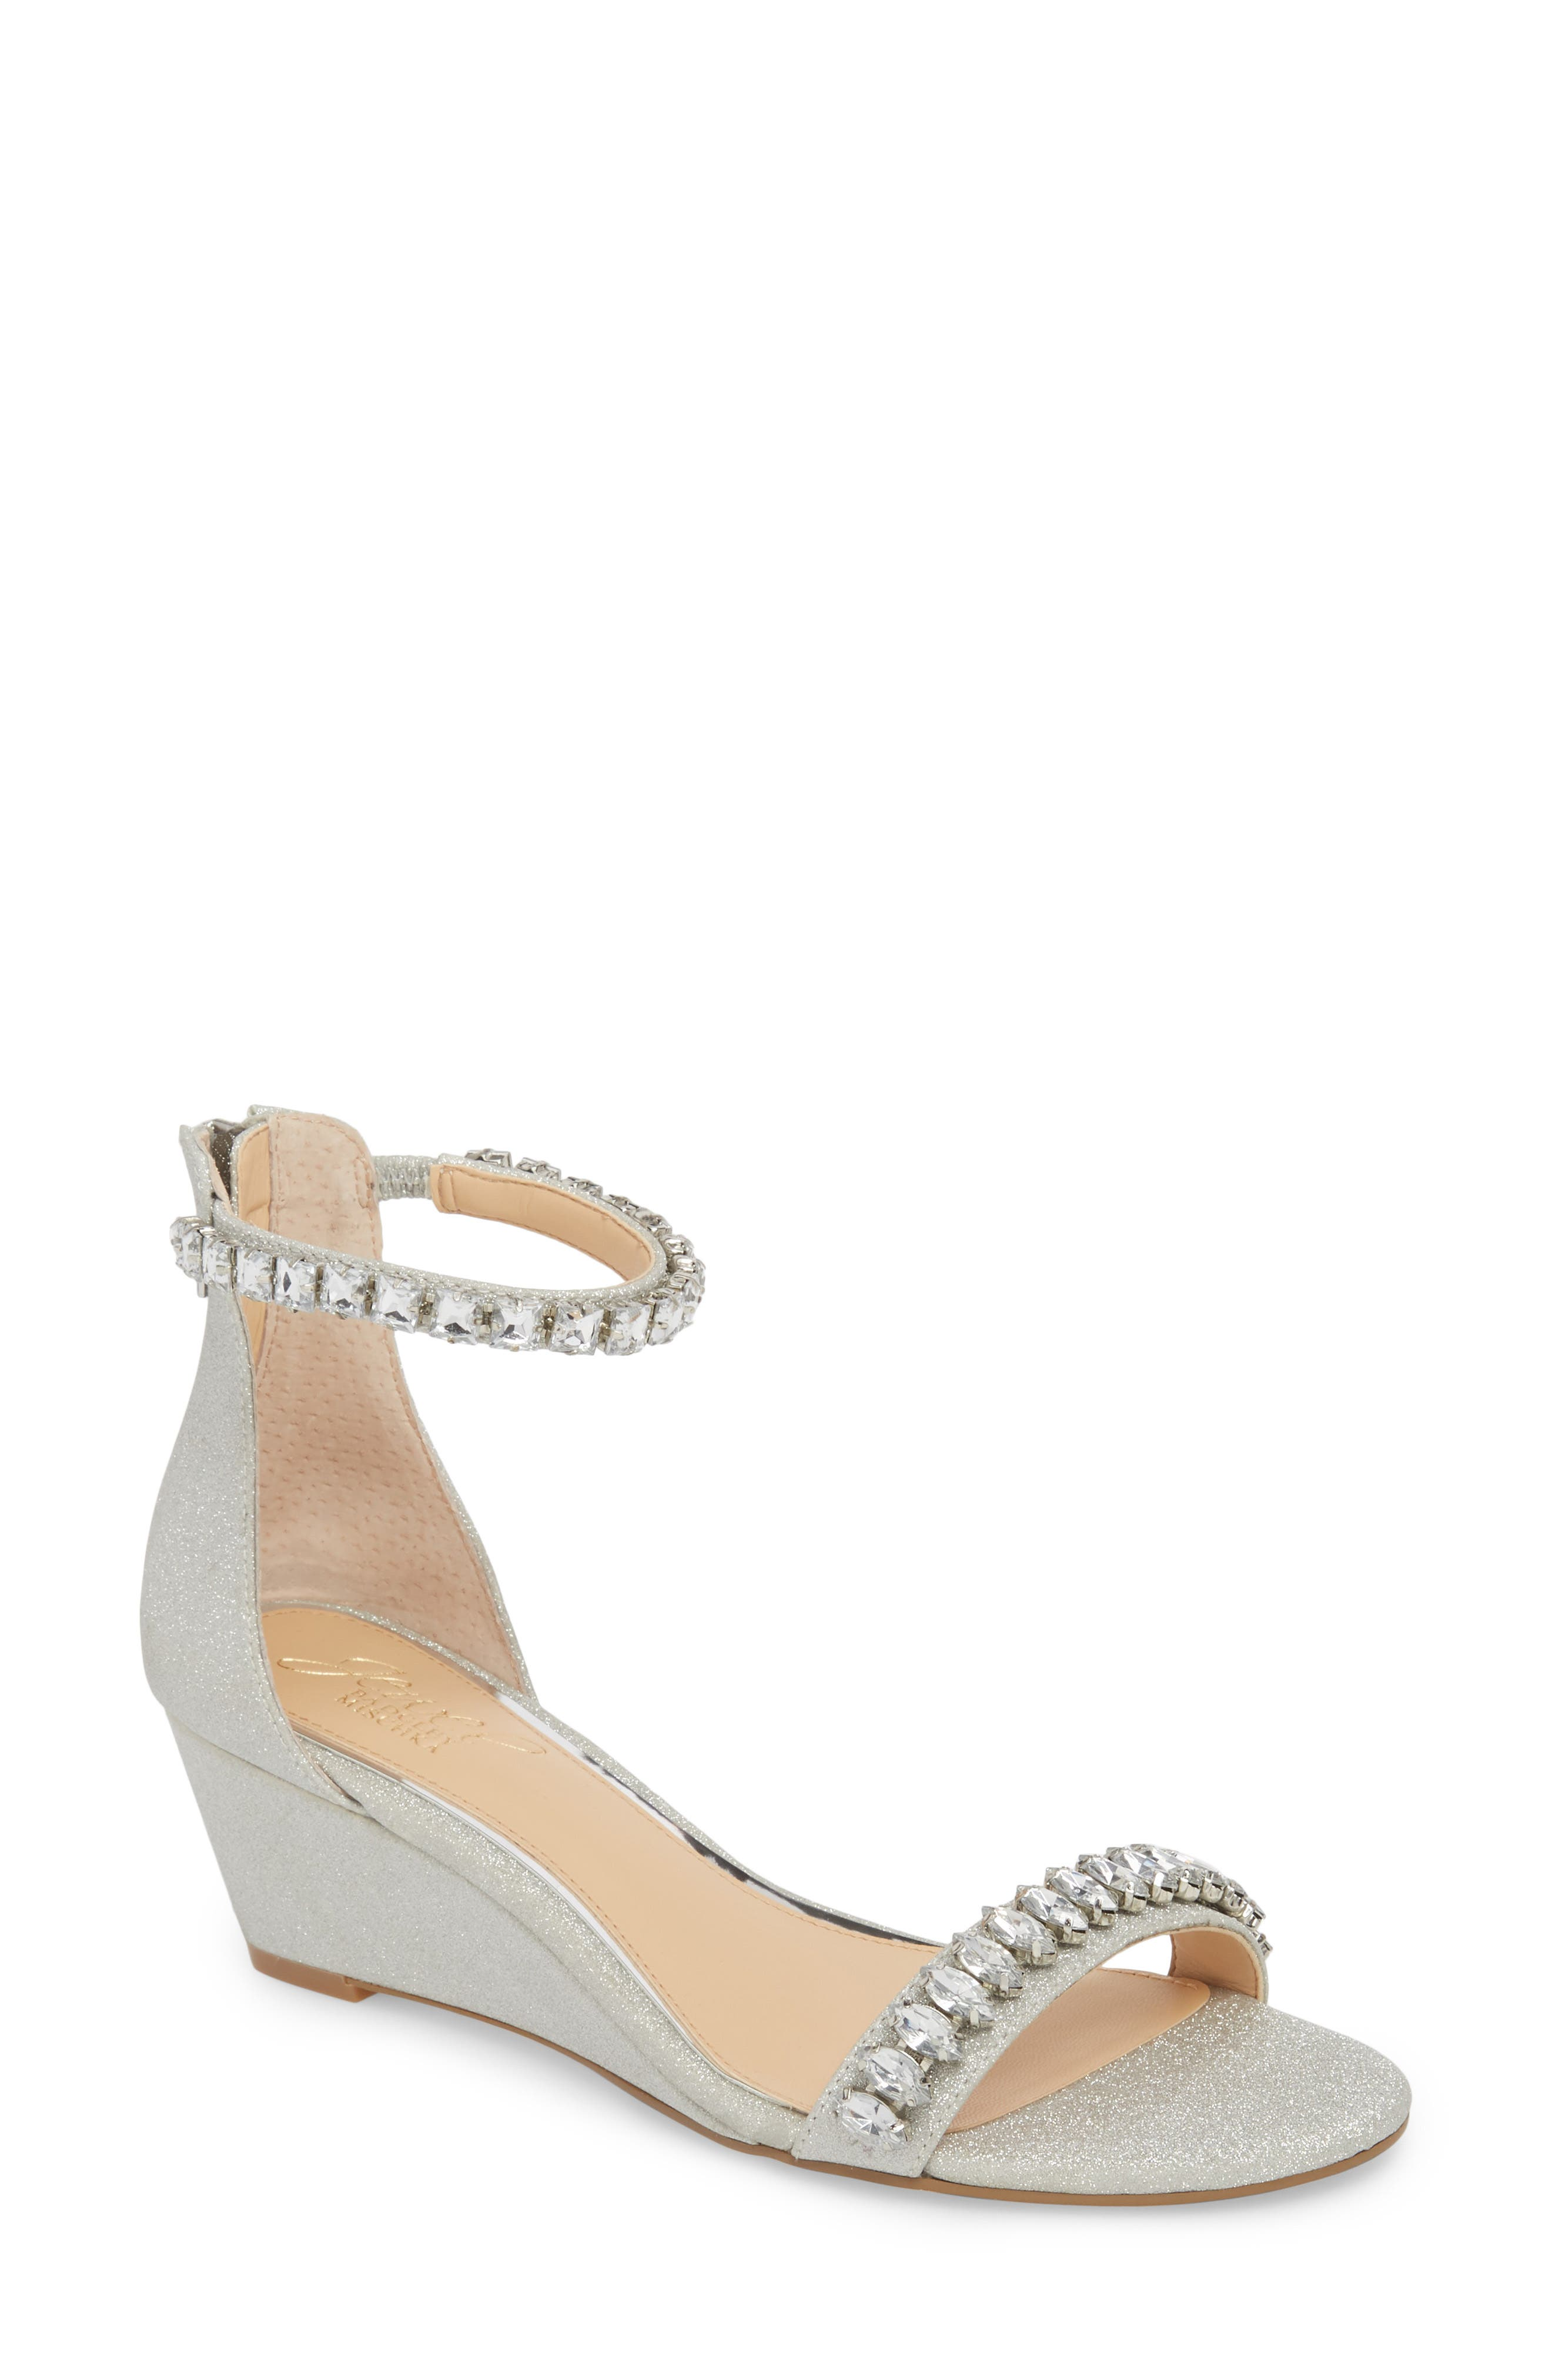 Mel Wedge Sandal,                             Main thumbnail 1, color,                             SILVER GLITTER FABRIC